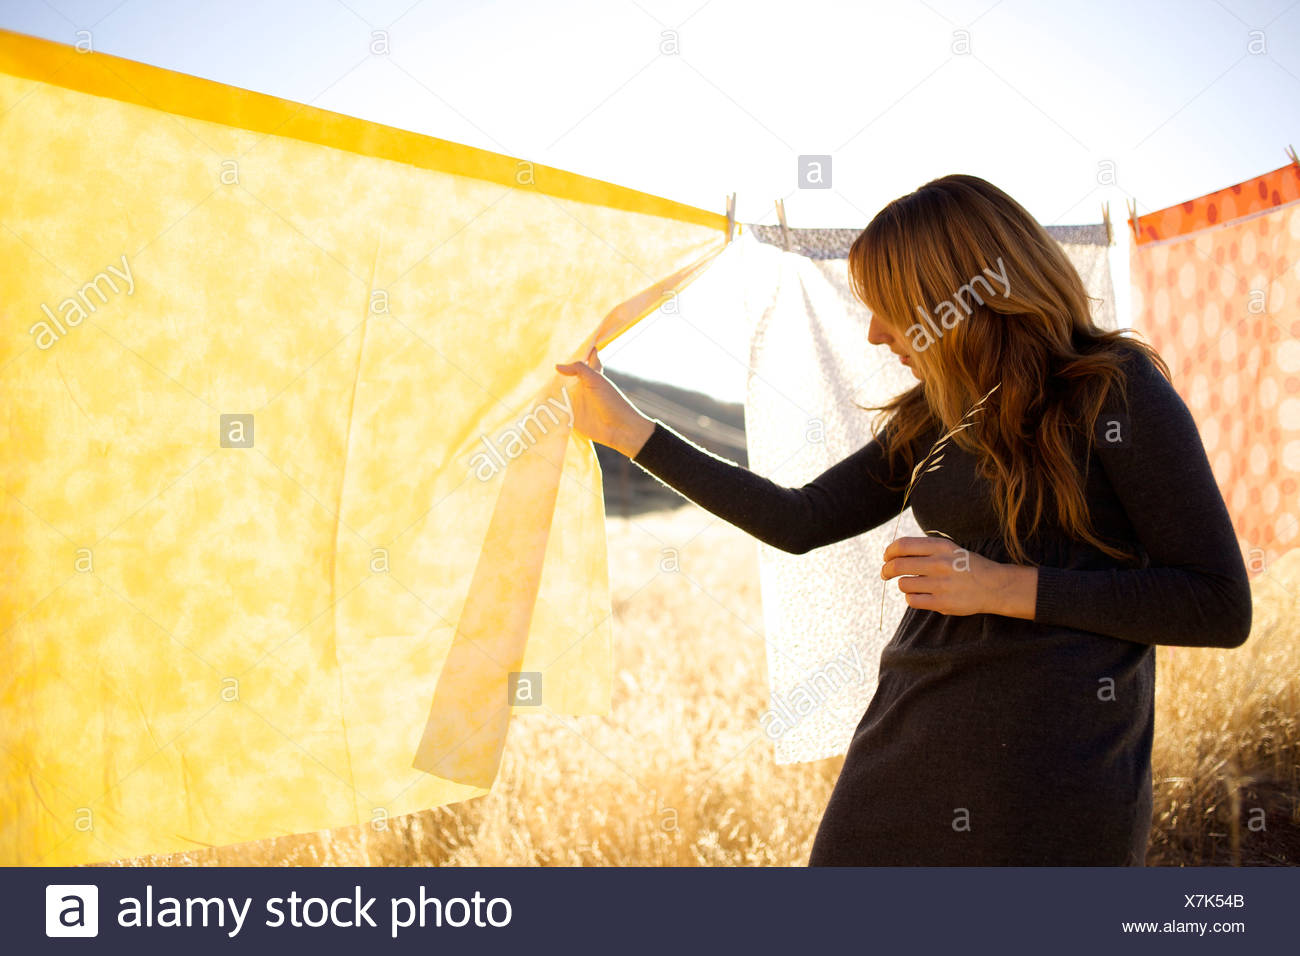 Female moves a yellow sheet hanging on a clothes line to look at what is on the other side. - Stock Image